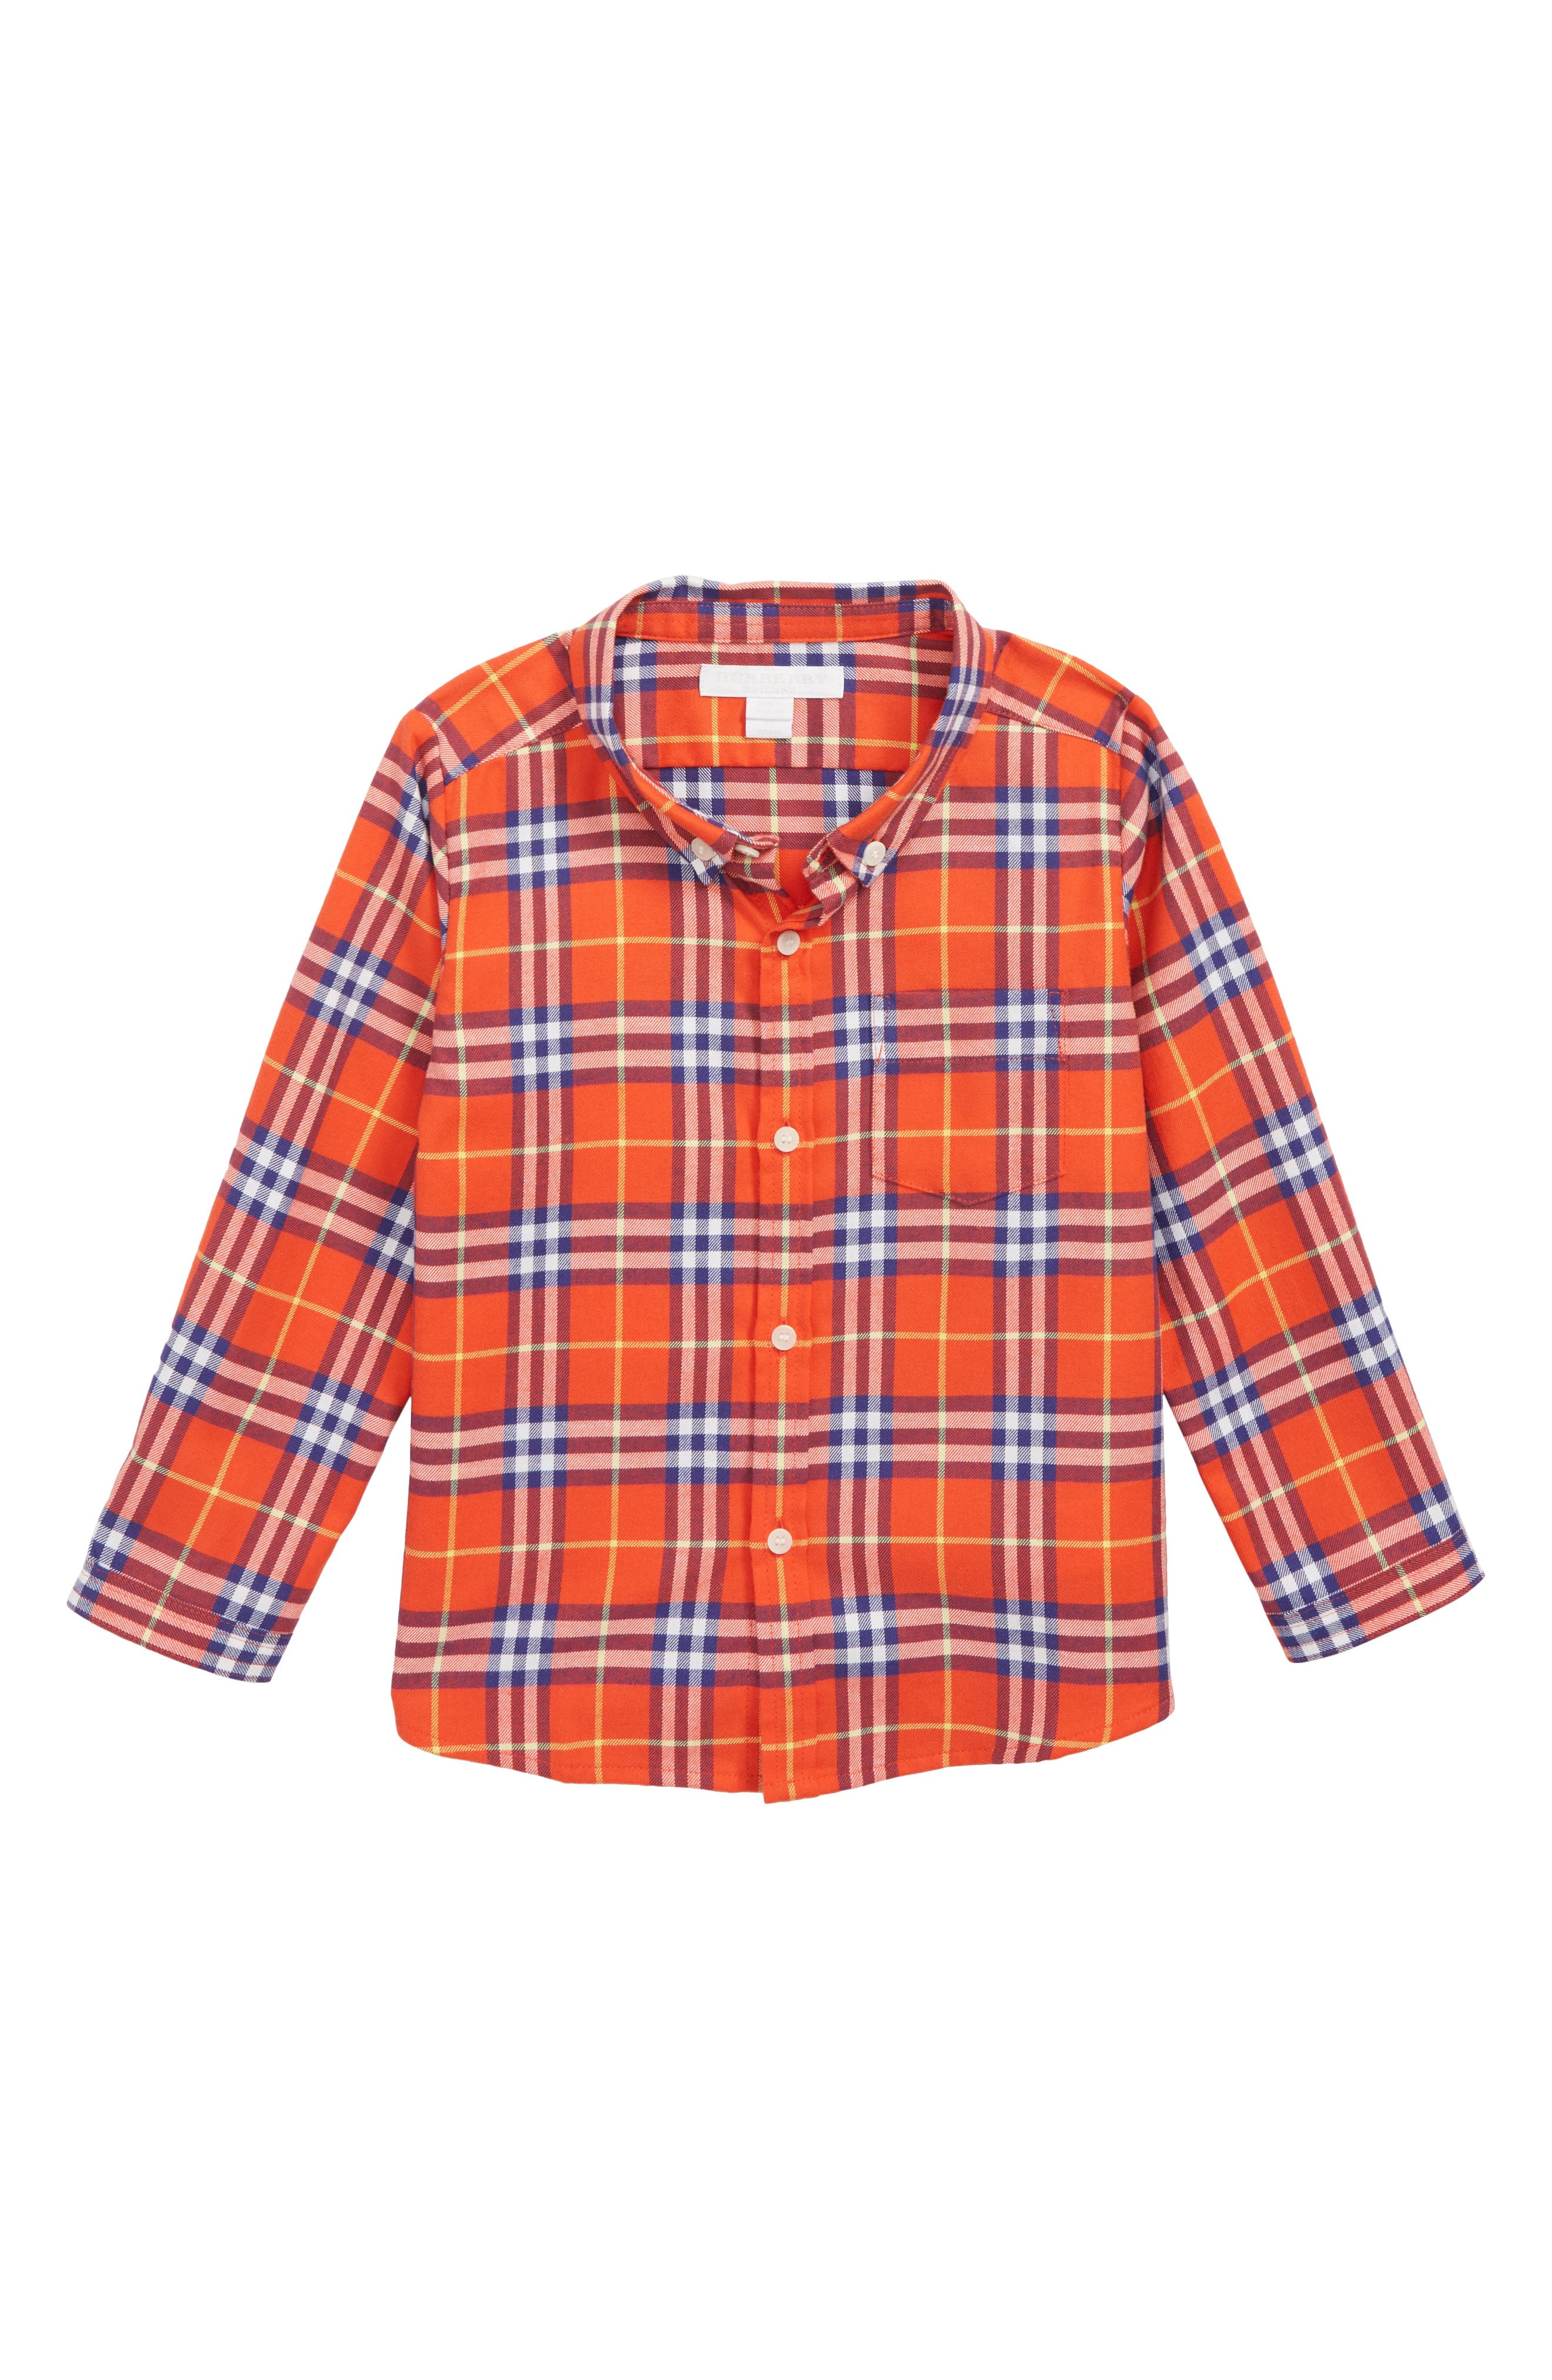 BURBERRY, Fred Plaid Woven Shirt, Main thumbnail 1, color, ORANGE RED CHK